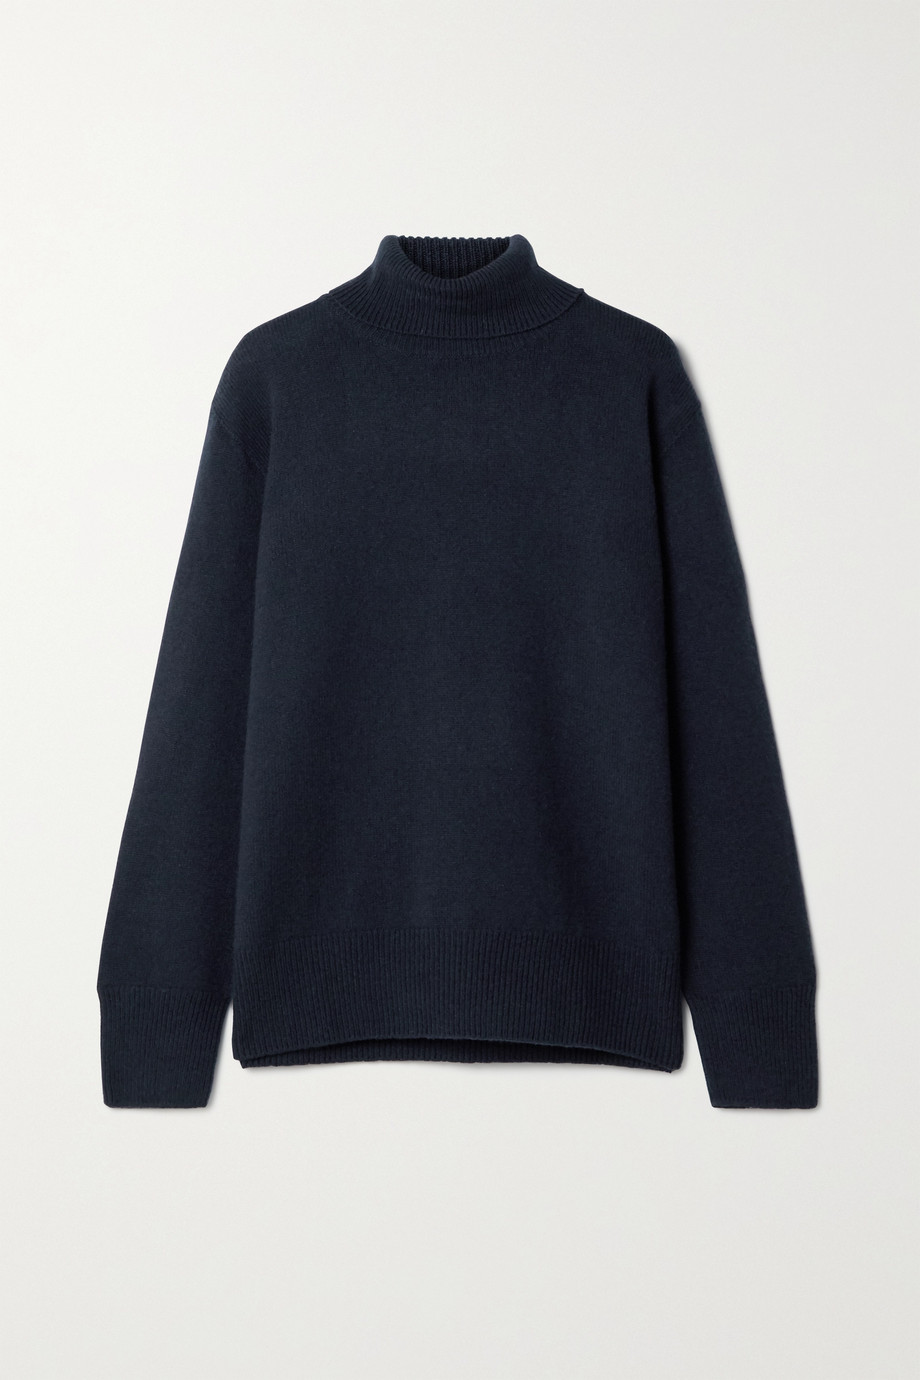 THE ROW Stepny wool and cashmere-blend turtleneck sweater